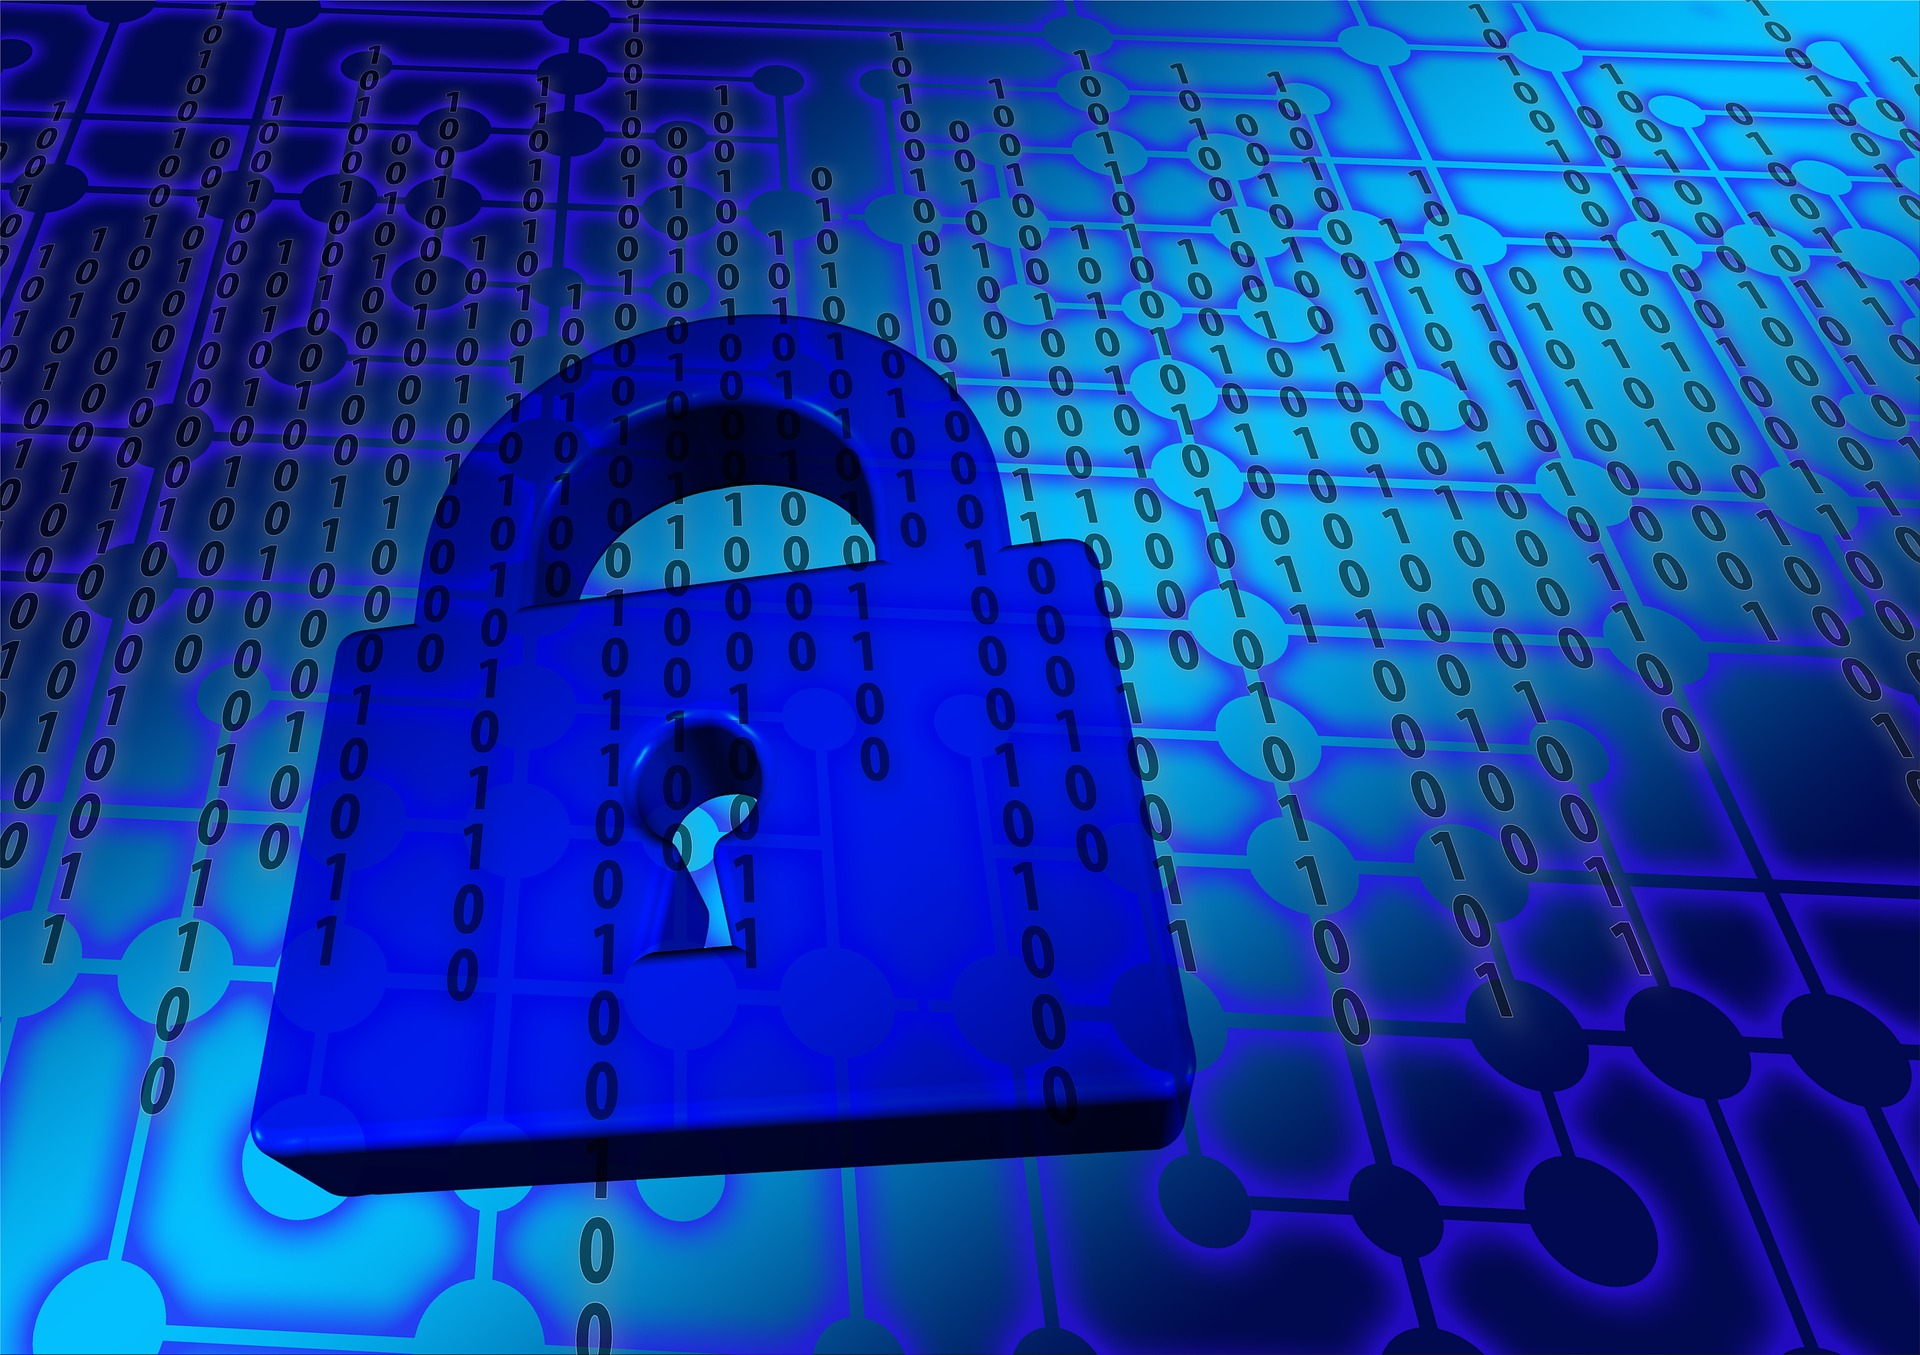 Top Cyber Attacks and Data Breaches of 2015